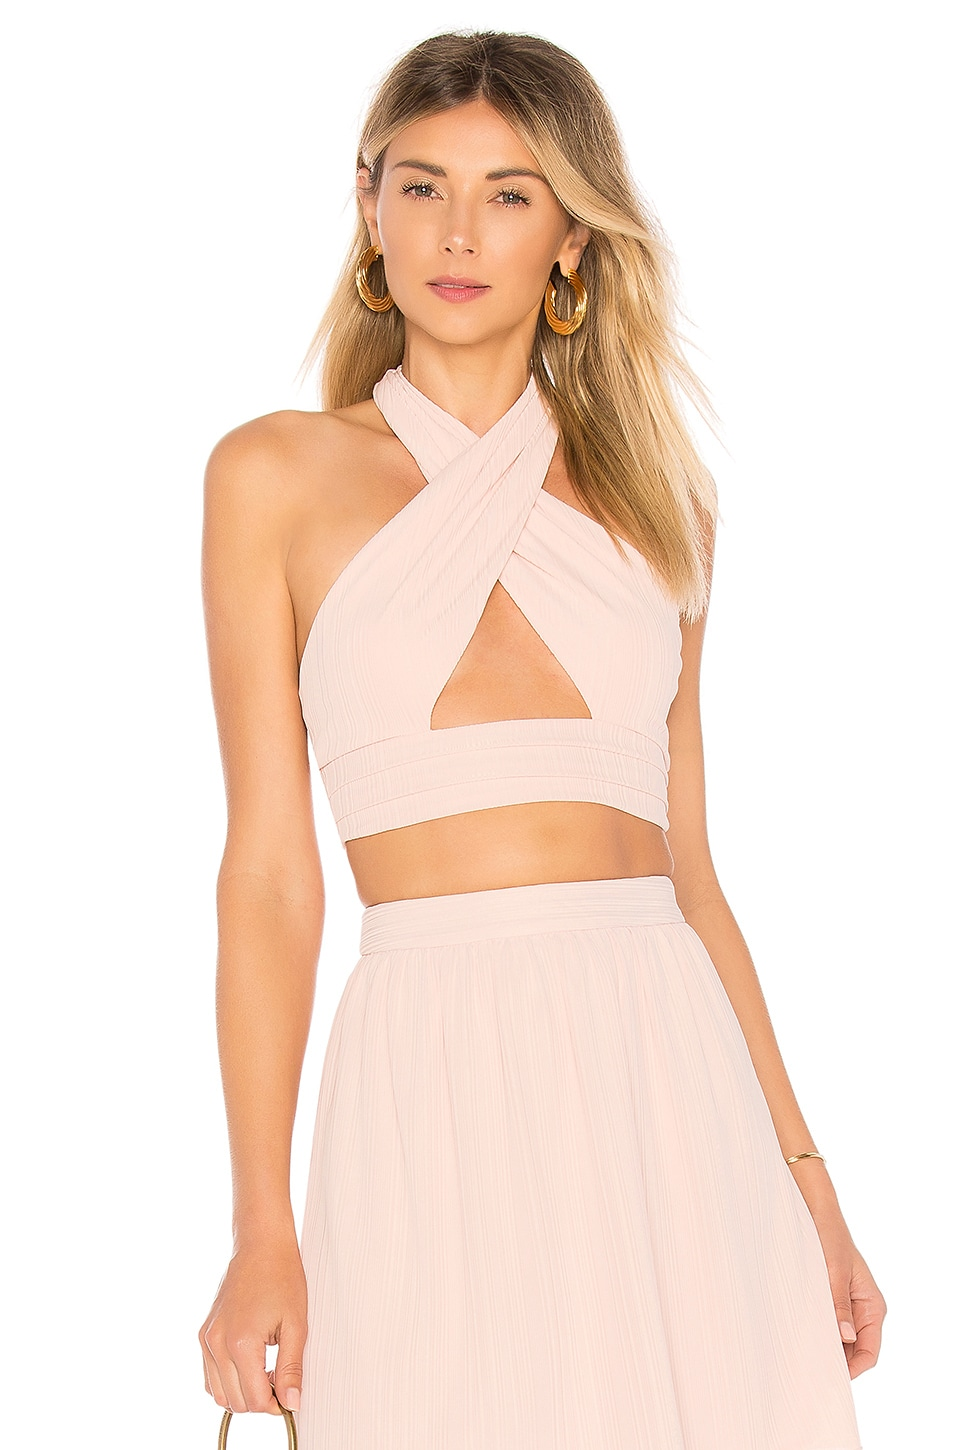 House of Harlow 1960 x REVOLVE Jules Top in Rose Pink